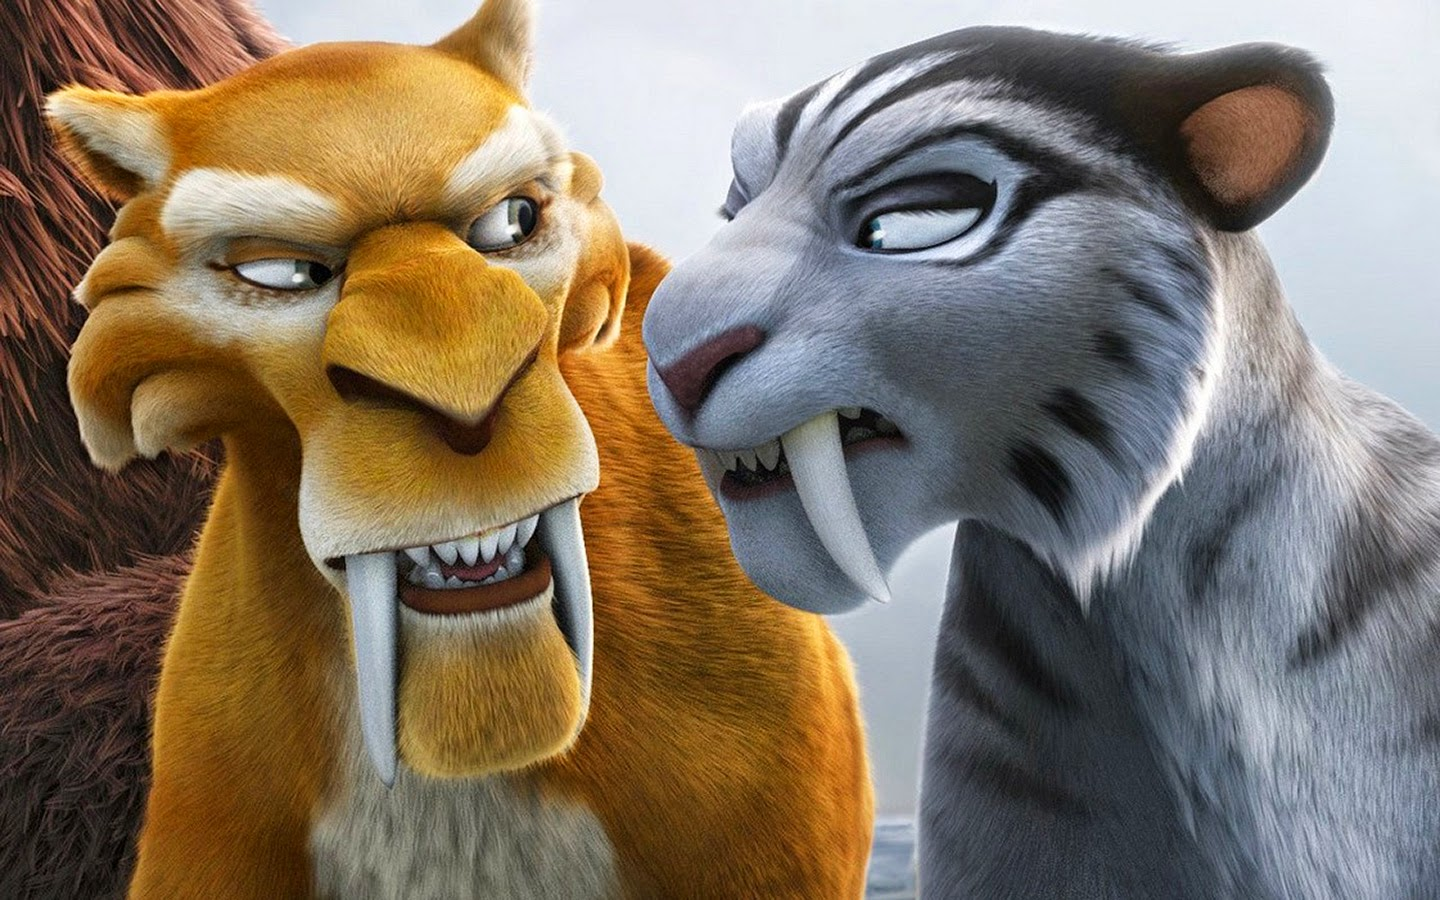 Ice age coloring book pages - Ice Age Desktop Wallpapers